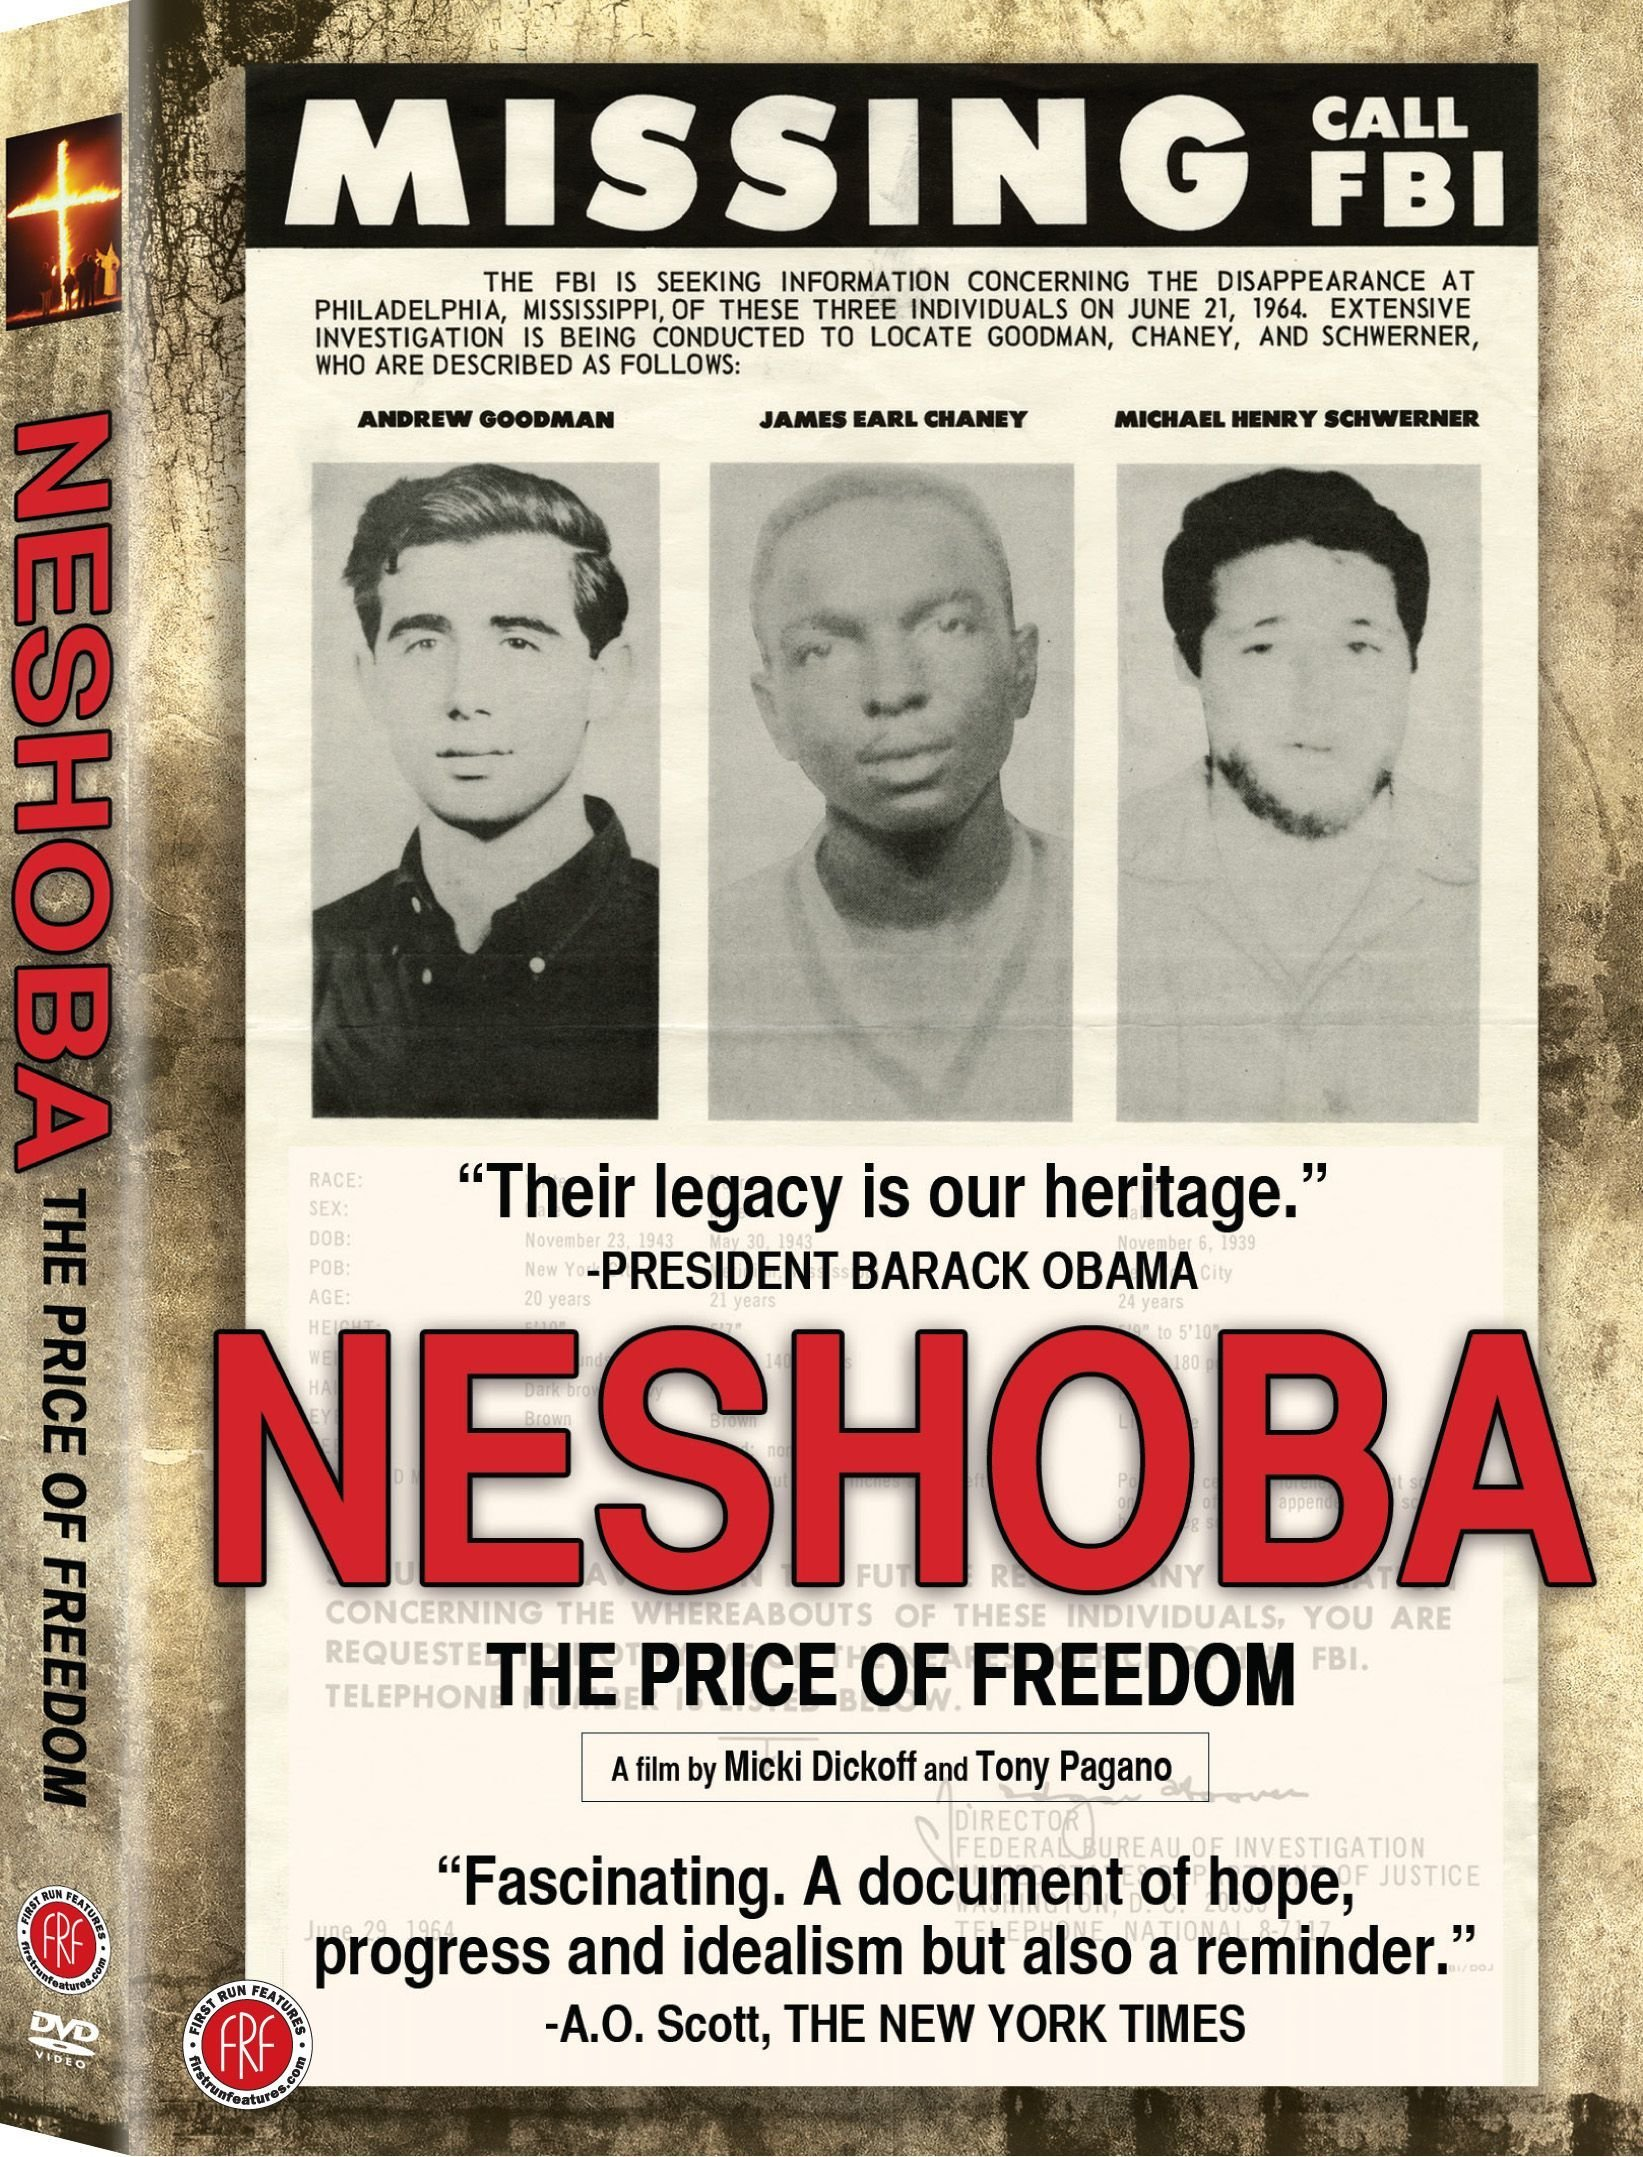 DVD : Ben Chaney - Neshoba: The Price Of Freedom (Full Frame)